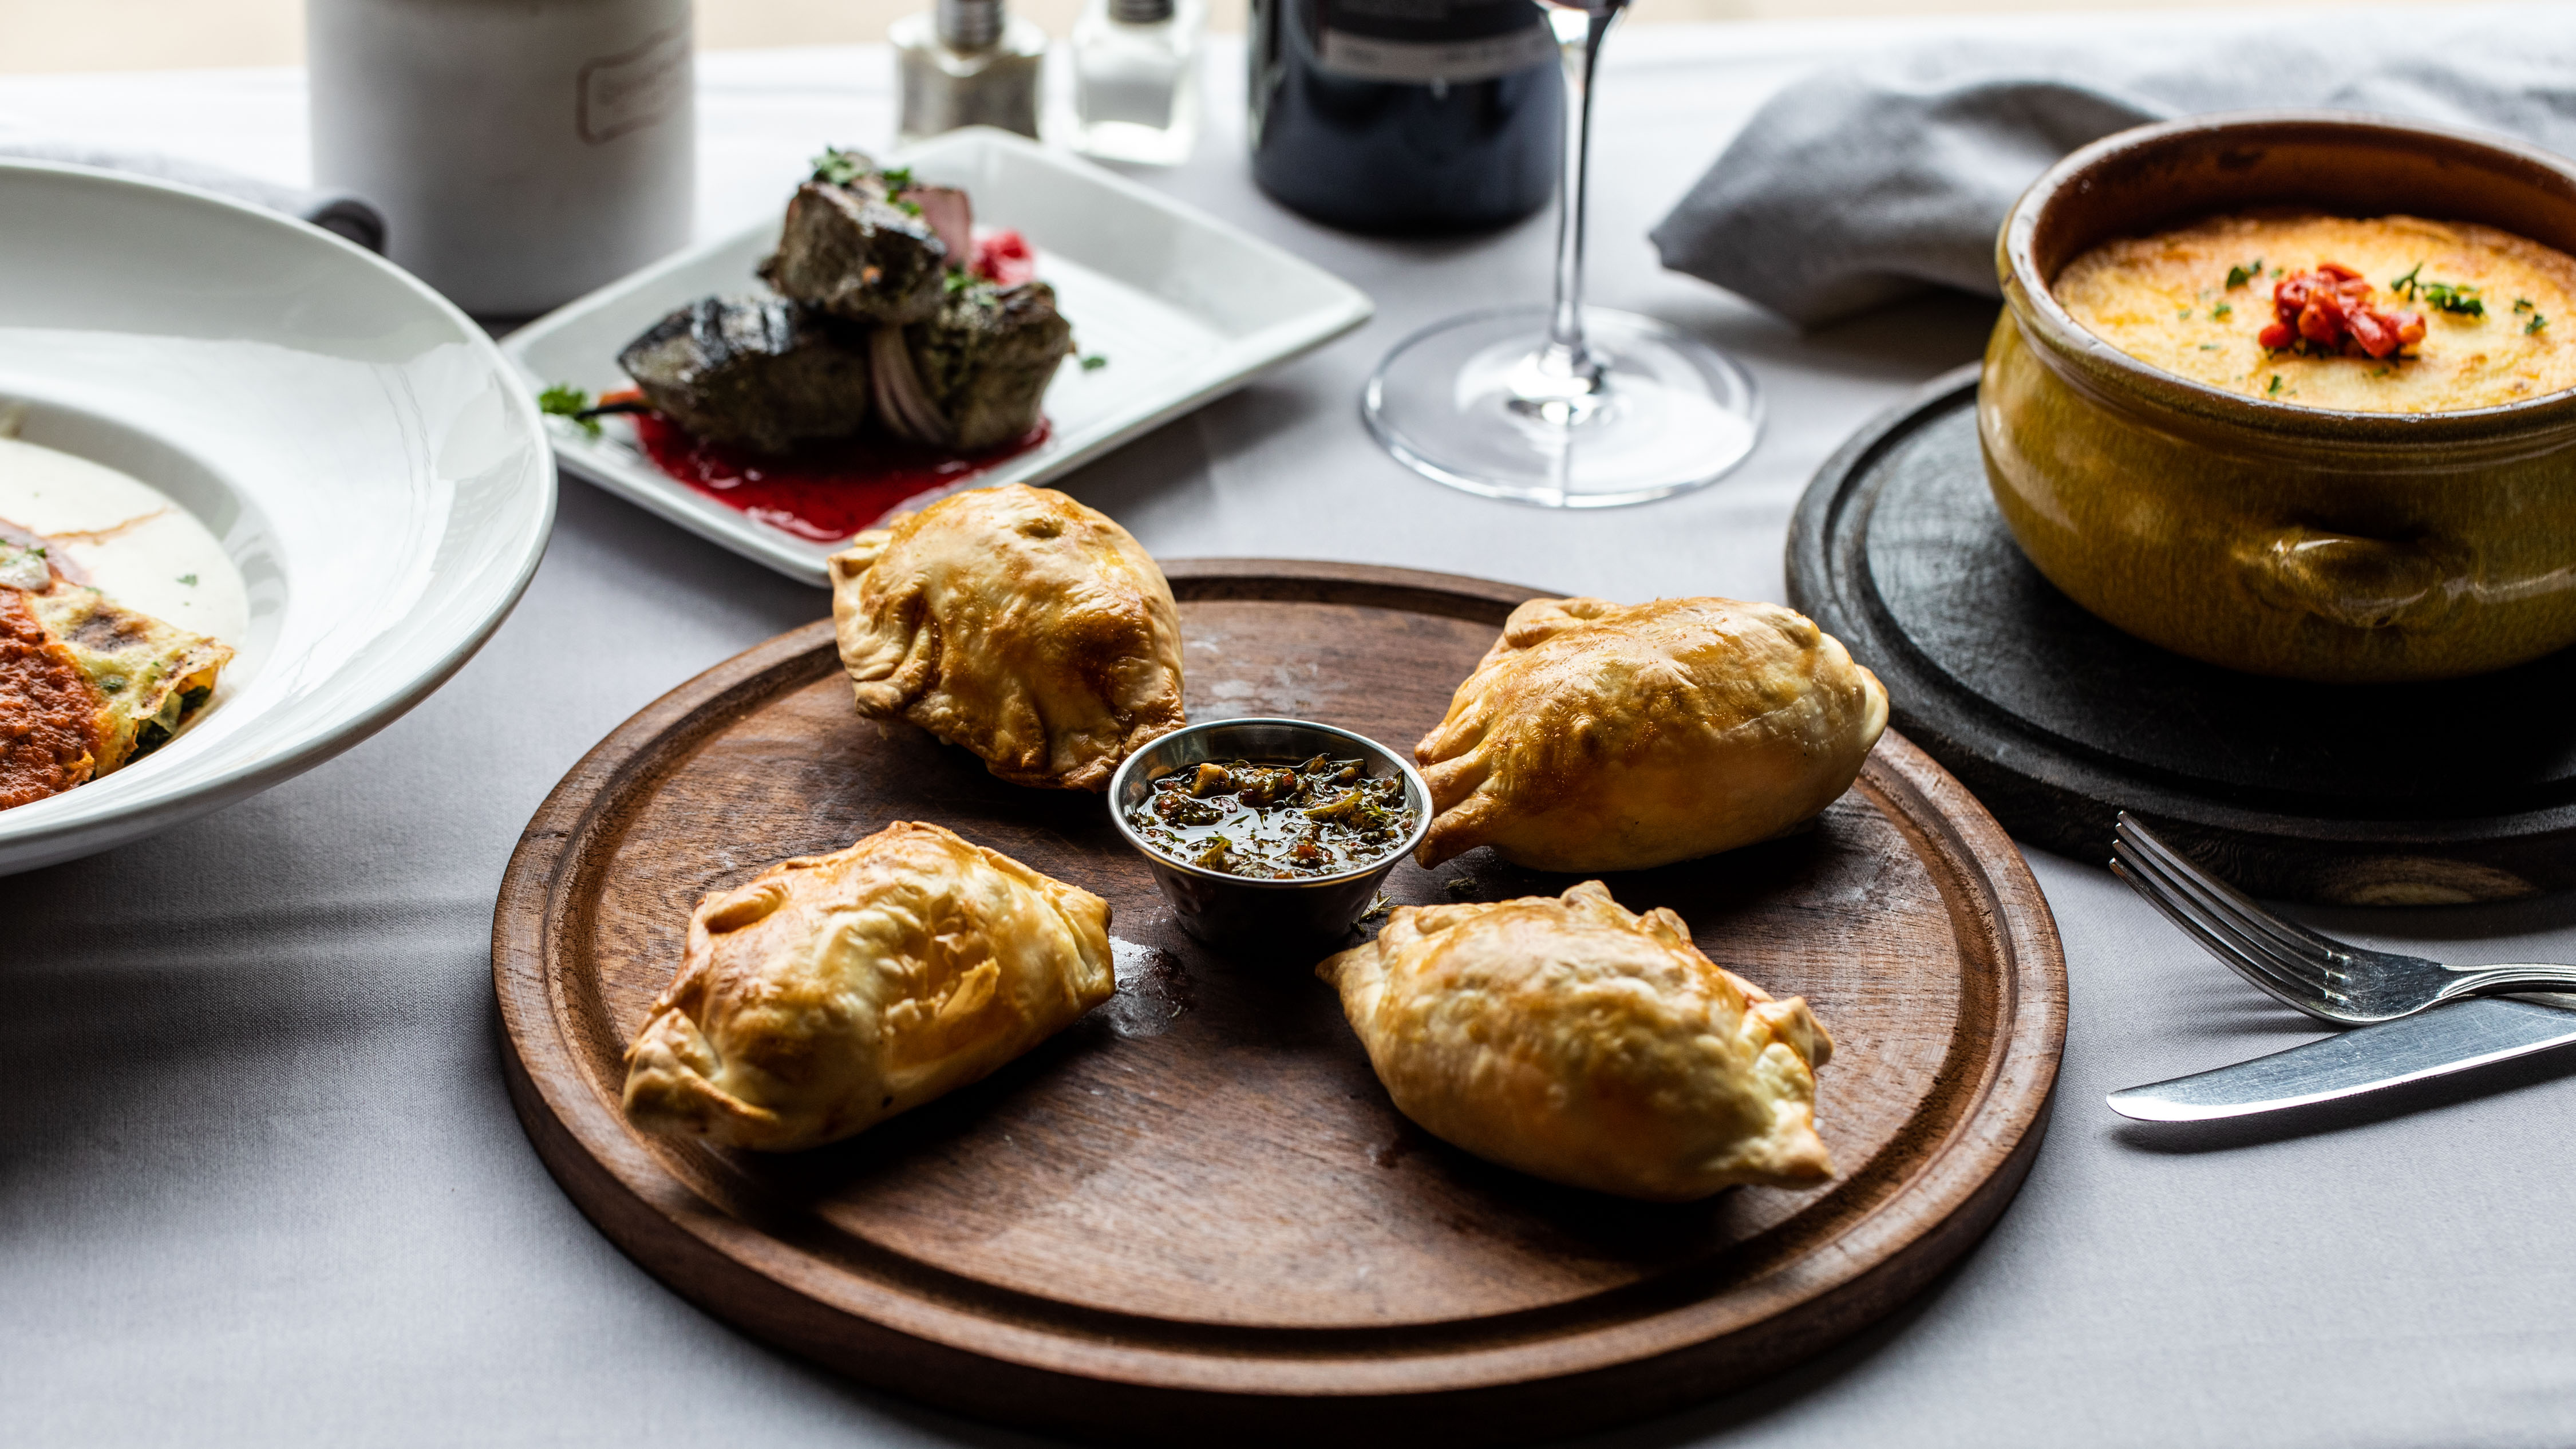 Wooden plate of four empanadas with dipping sauce and other dishes in the background